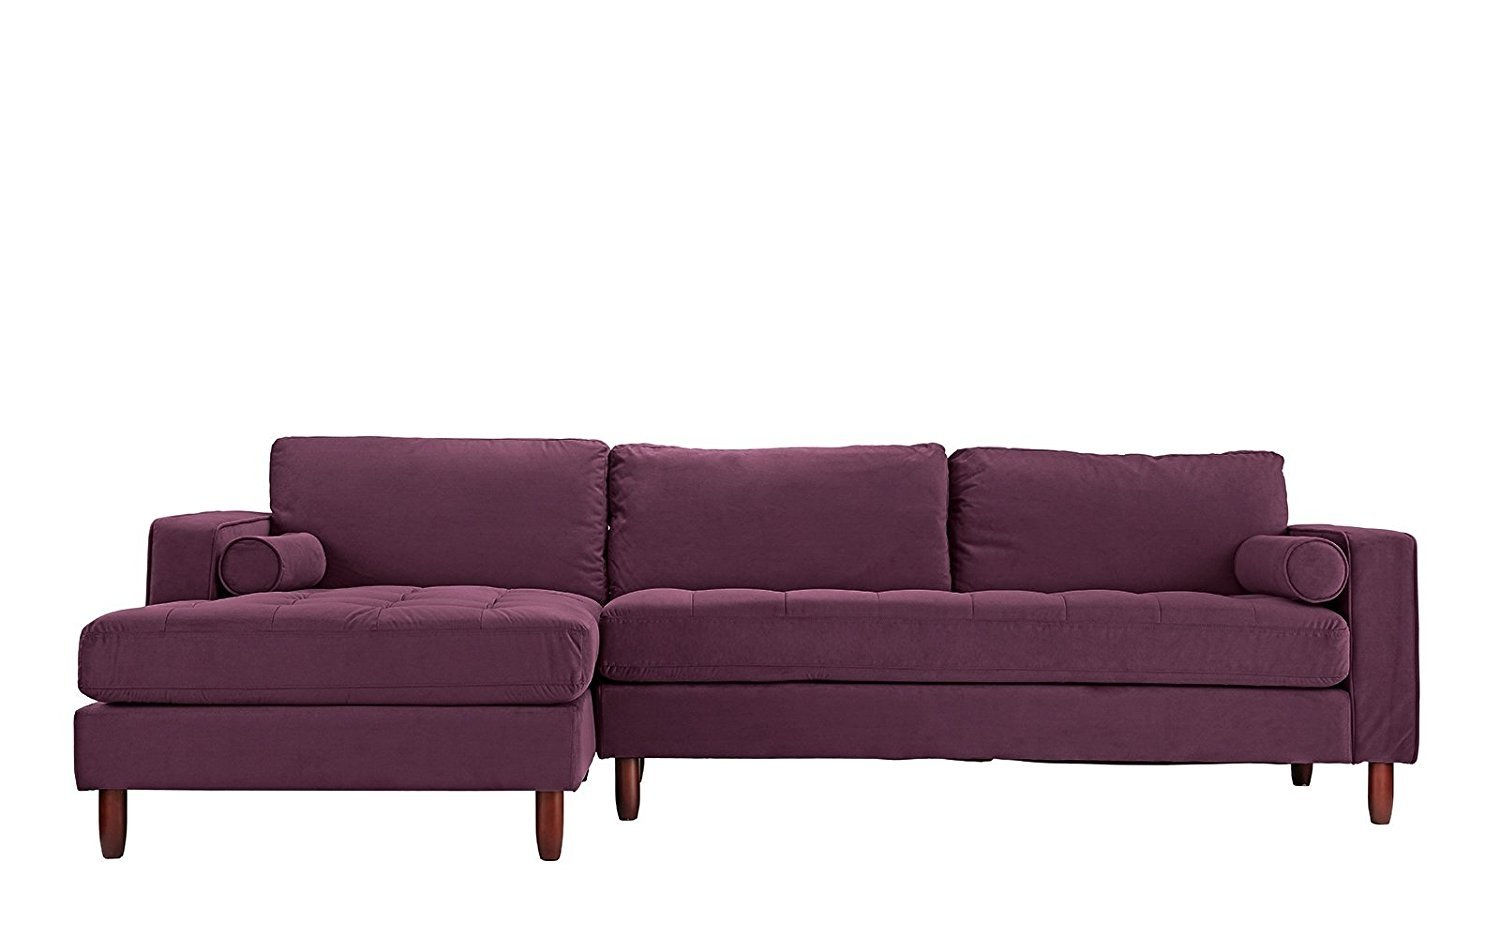 Admirable Details About Tufted Velvet Fabric Sectional Sofa L Shape Couch Left Facing Chaise Purple Pdpeps Interior Chair Design Pdpepsorg